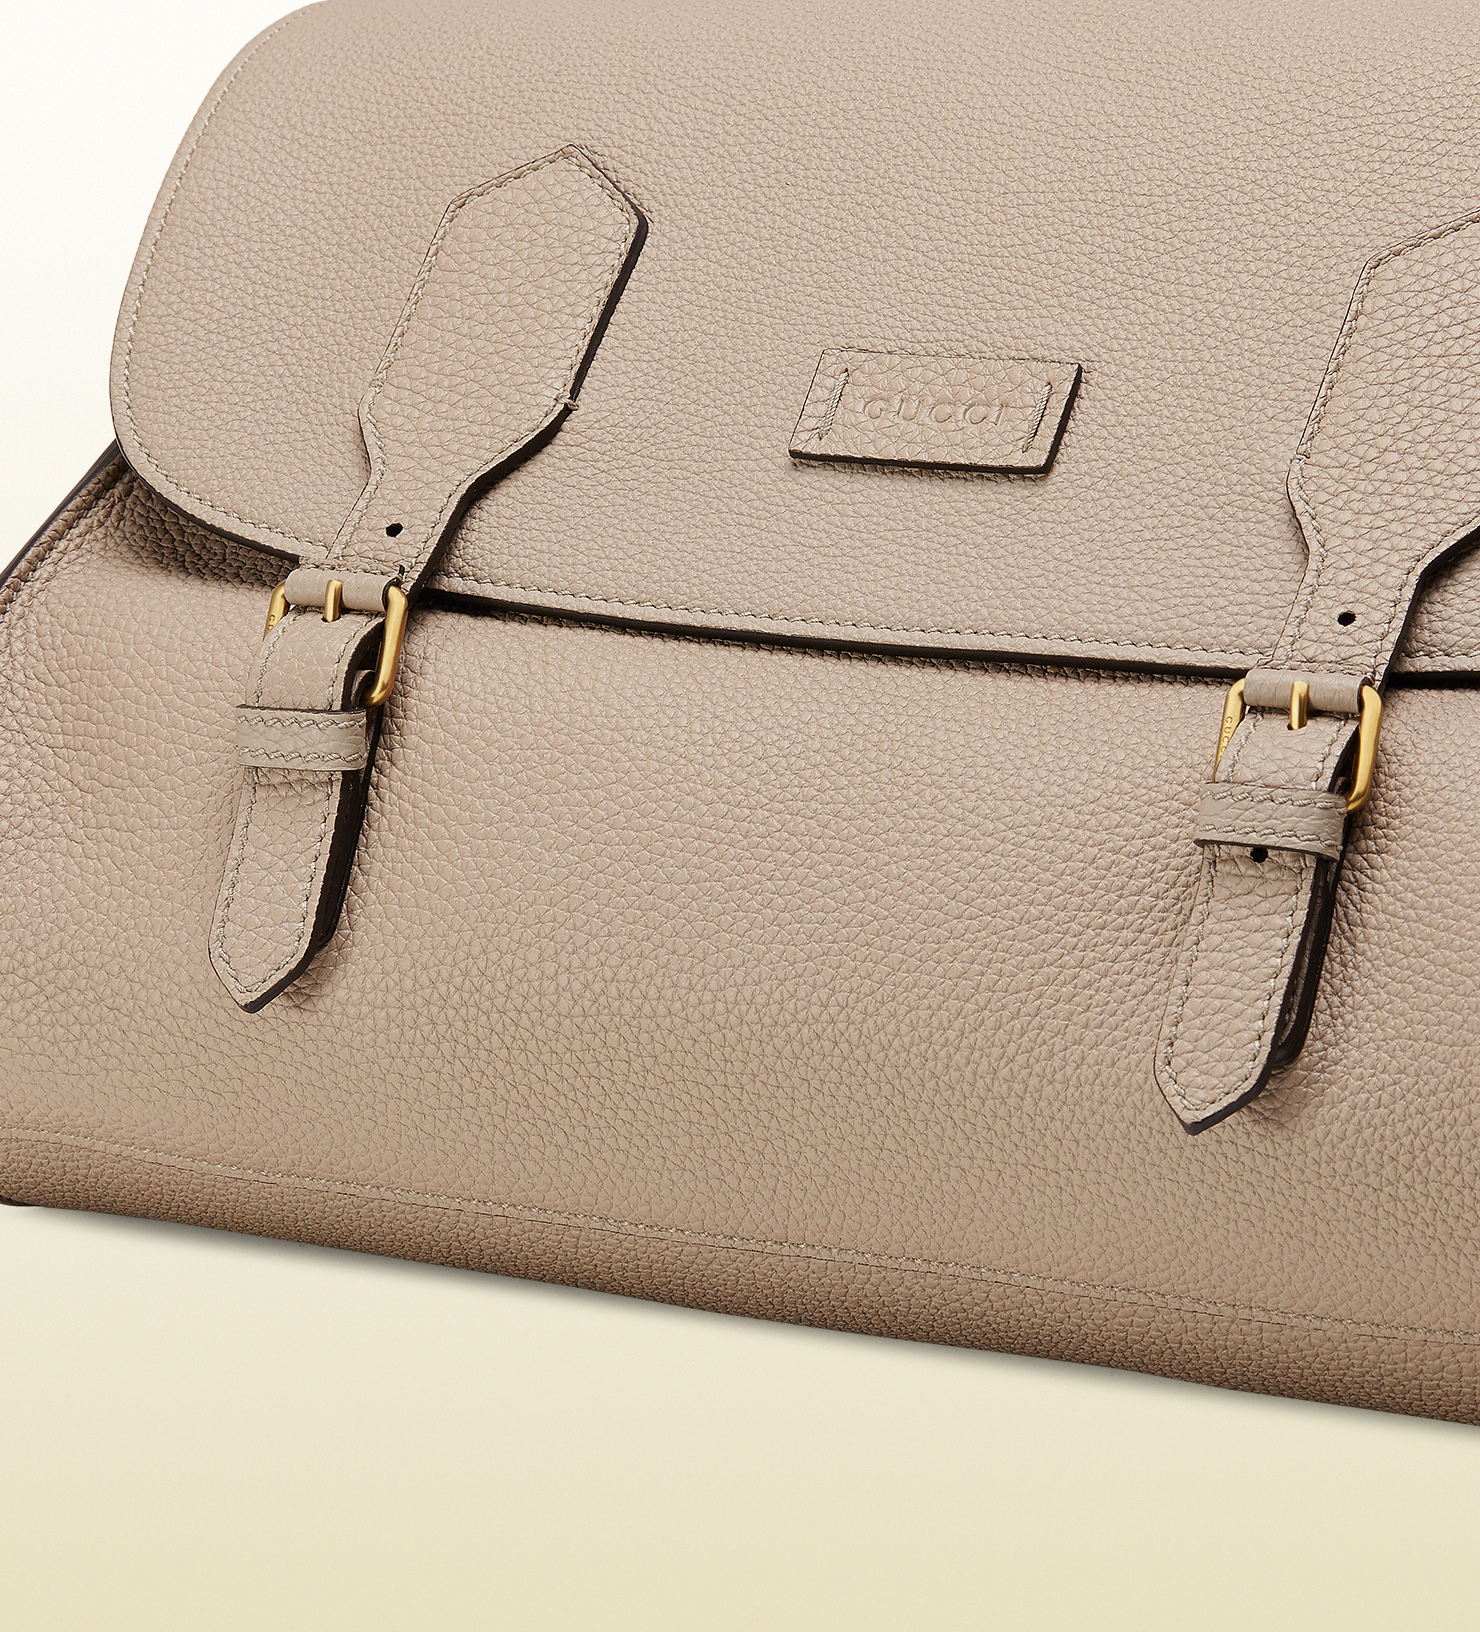 8adffb6649c8 Gucci Leather Messenger Bag With Striped Strap in Natural for Men | Lyst